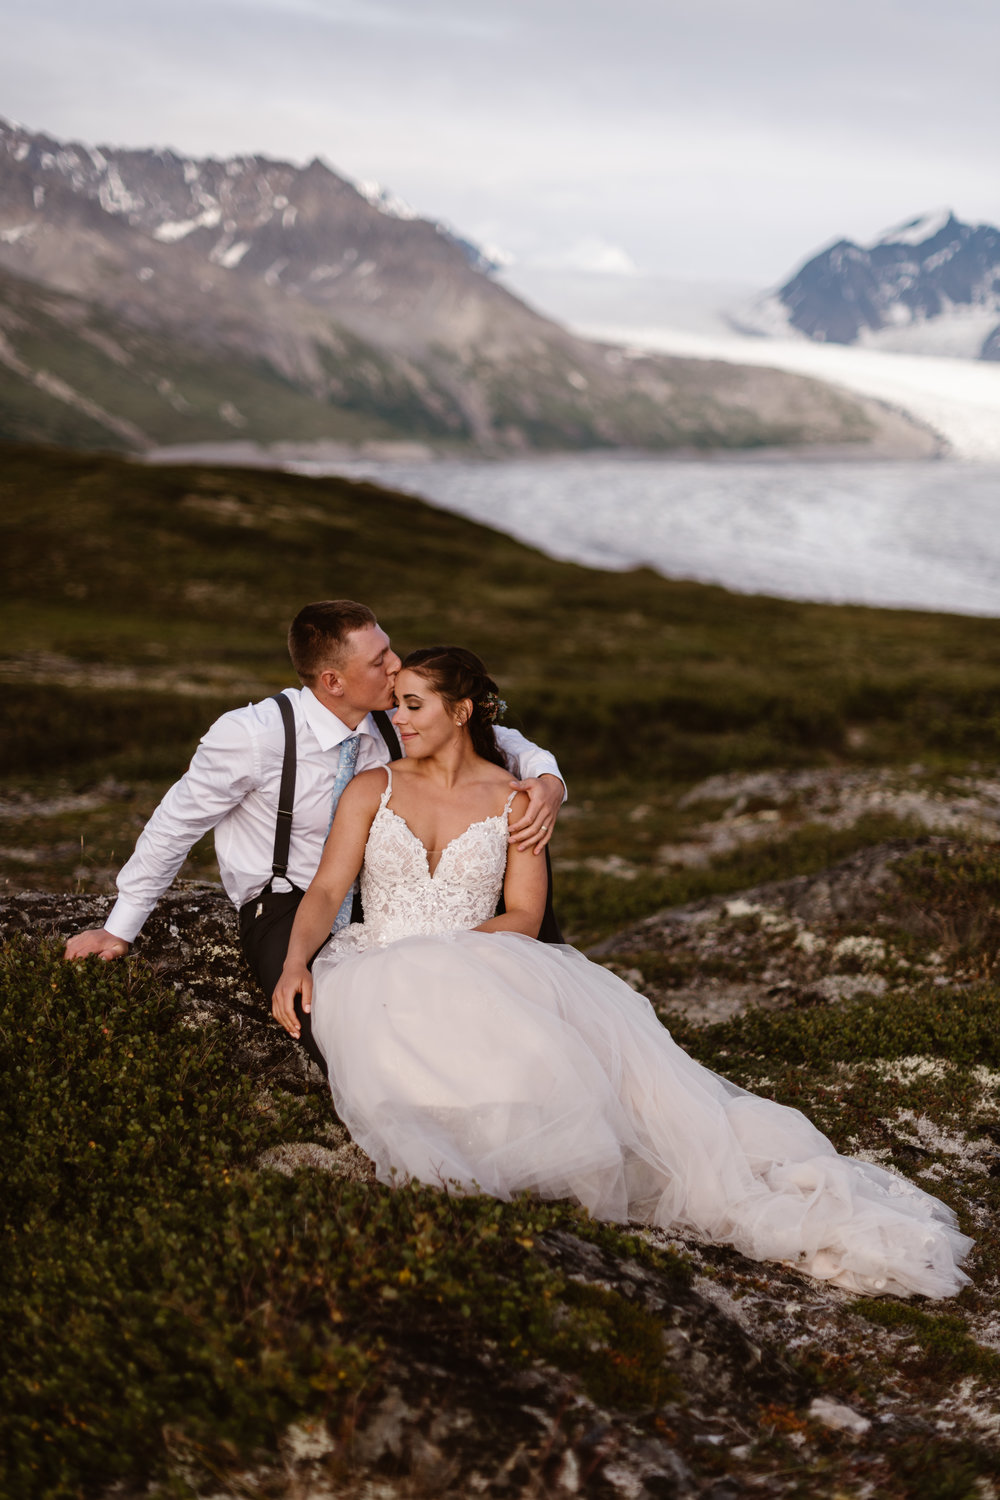 The bride and groom sit down on the lush, green mountainside. Connor, the groom, wraps his around Jordyn and kisses her forehead in these elopement photos taken by Adventure Instead, an elopement wedding photographer. Jordyn leans into Conner with her eyes closed as they sit among glacial peaks and a glacial lake.